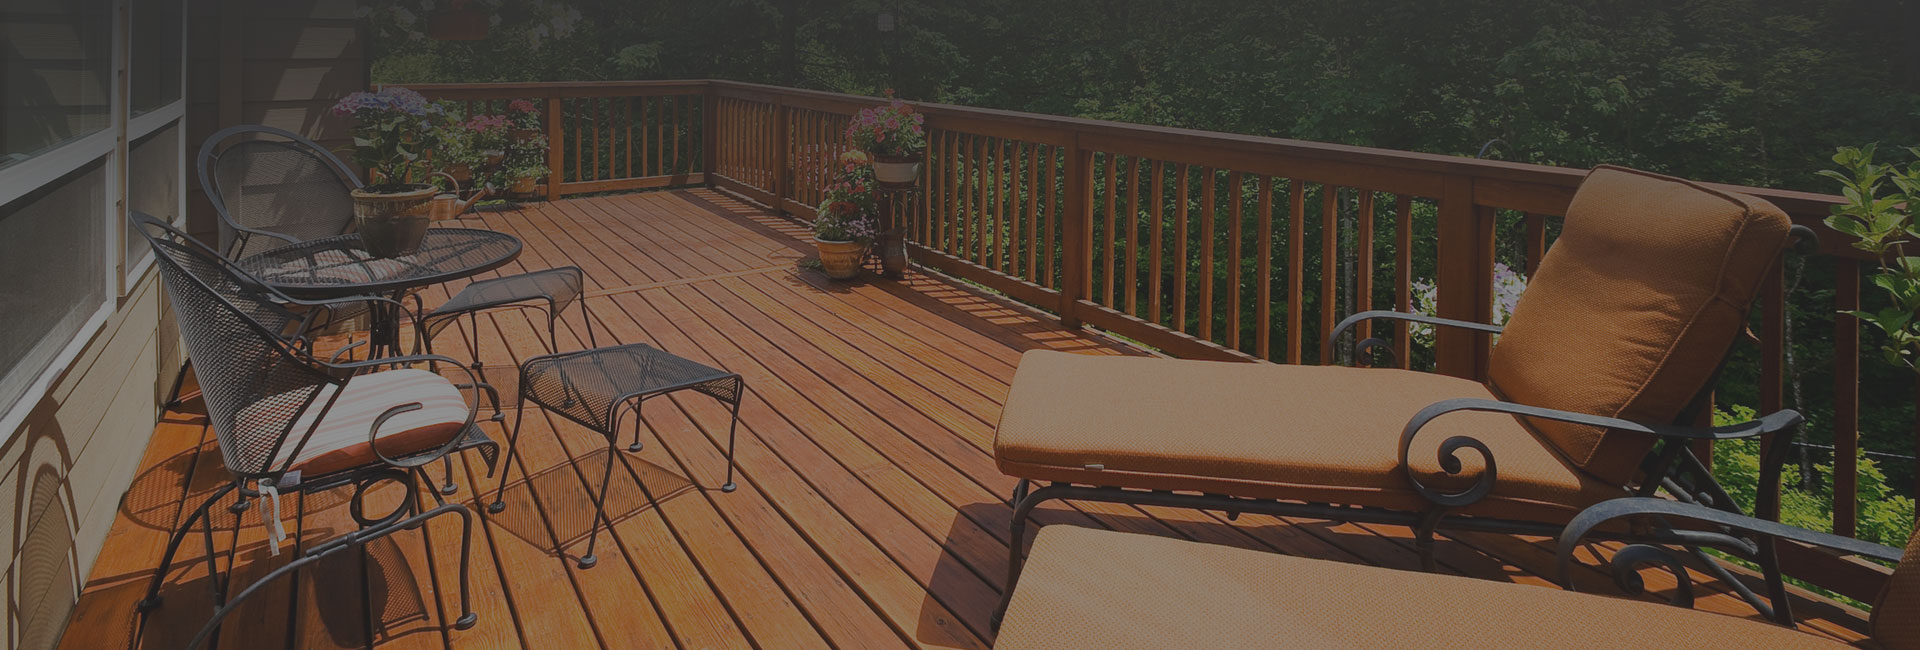 finished deck with outdoor furniture